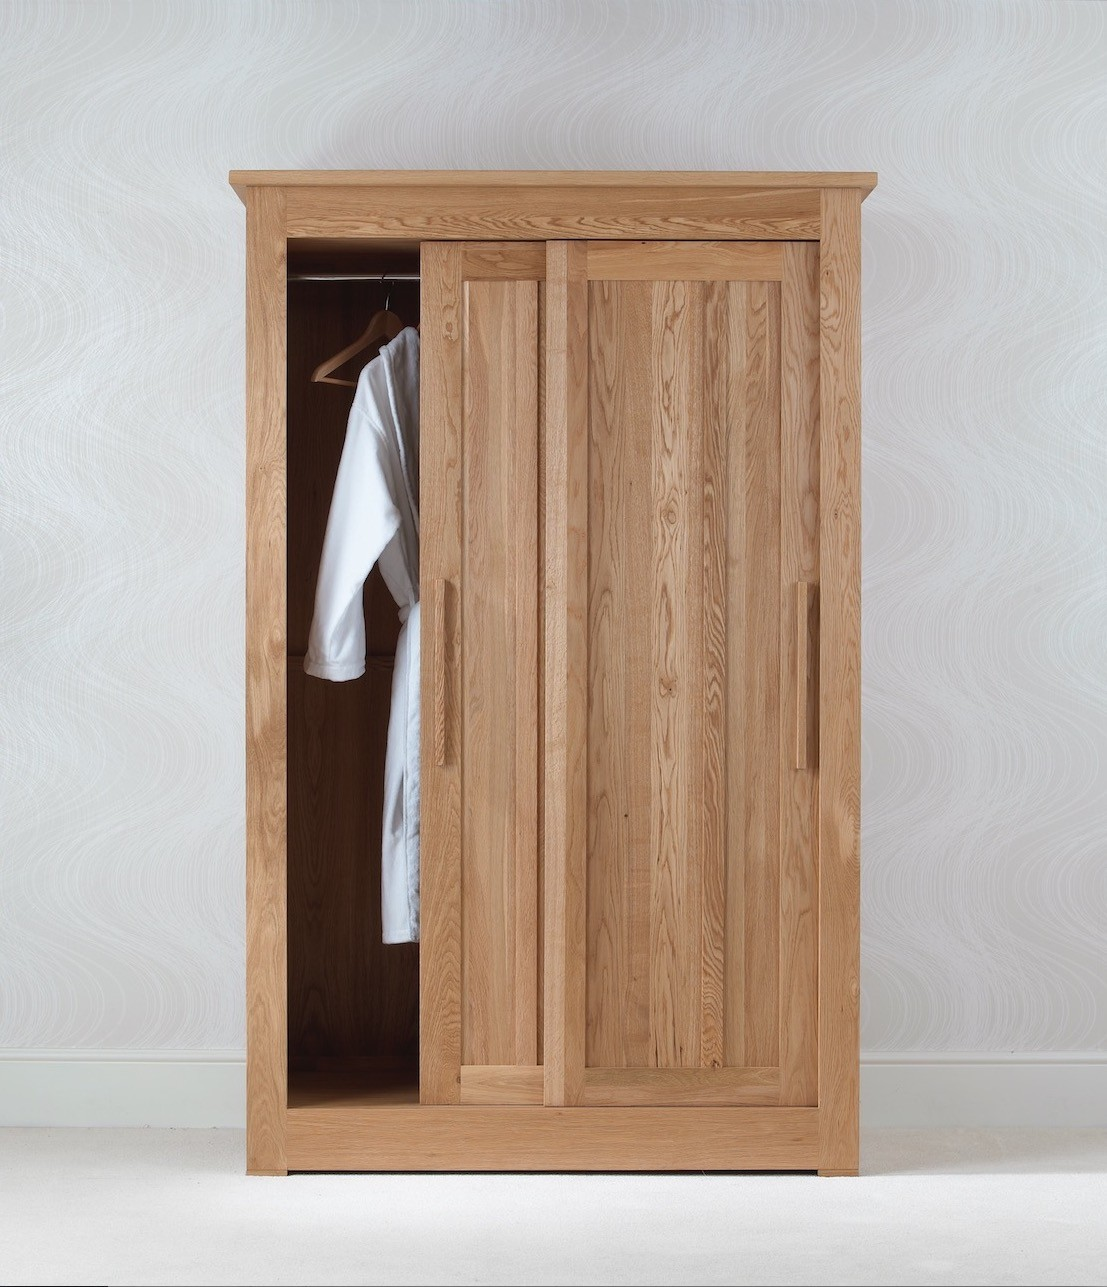 All hanging sliding door wardrobe con tempo furniture - Screens for doors that hang ...